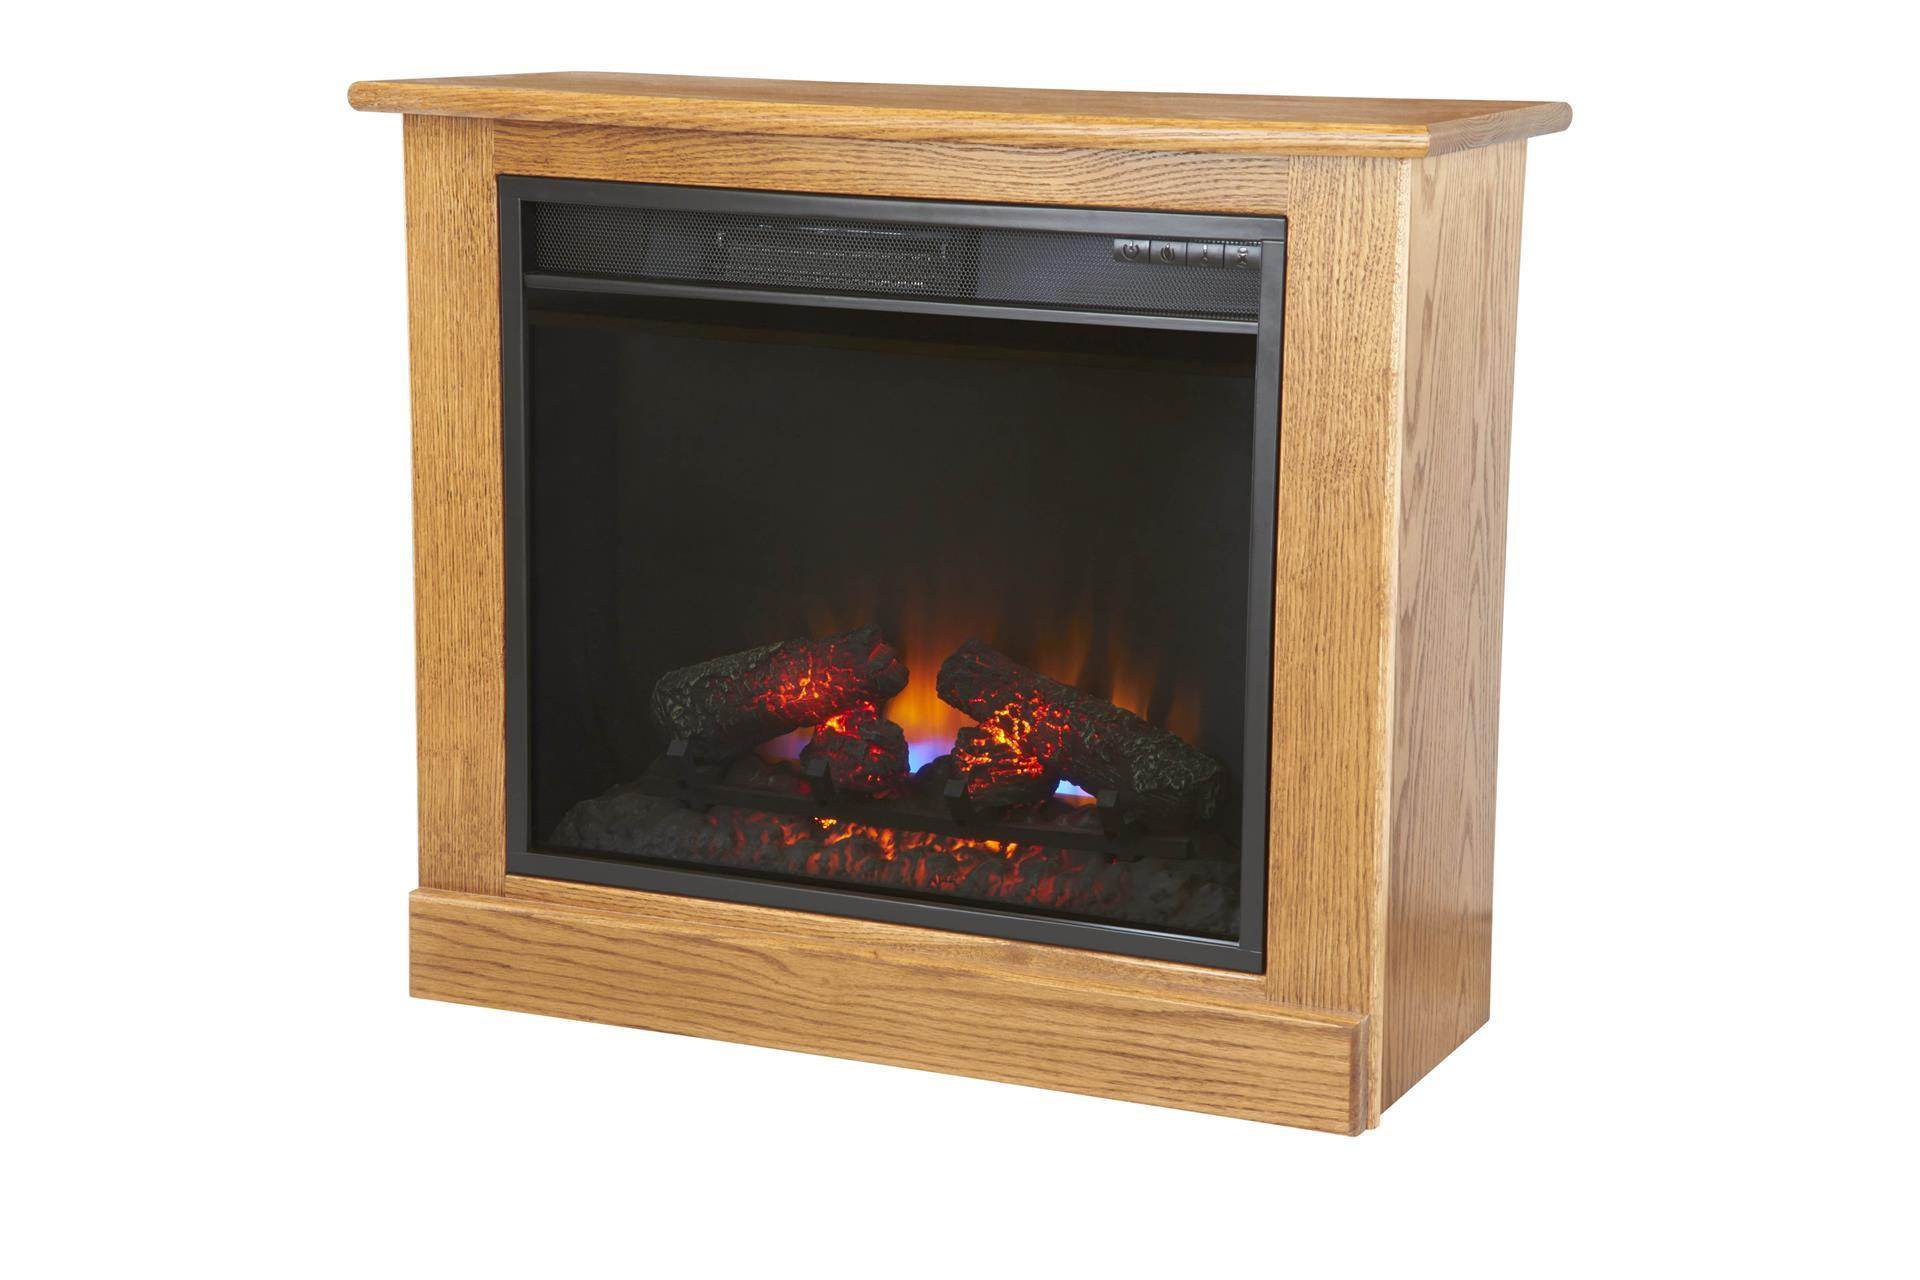 Portable Fireplace Heater On Casters From Dutchcrafters Amish